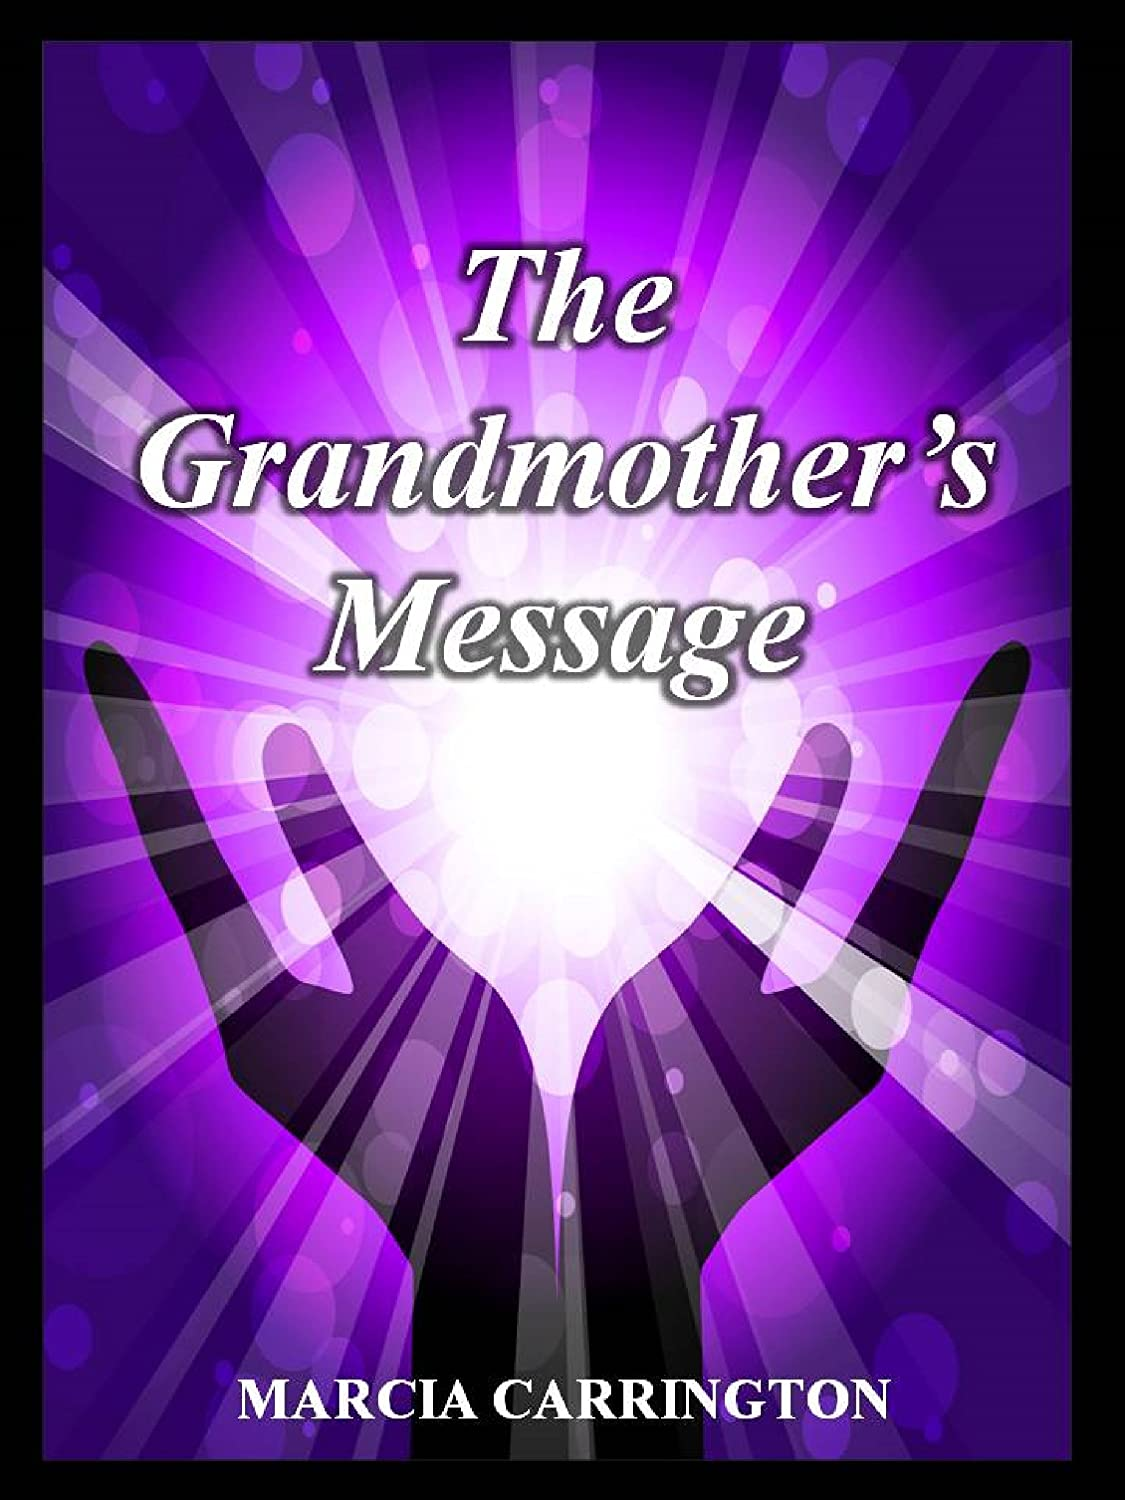 THE-GRANDMOTHERS-MESSAGE-expanded